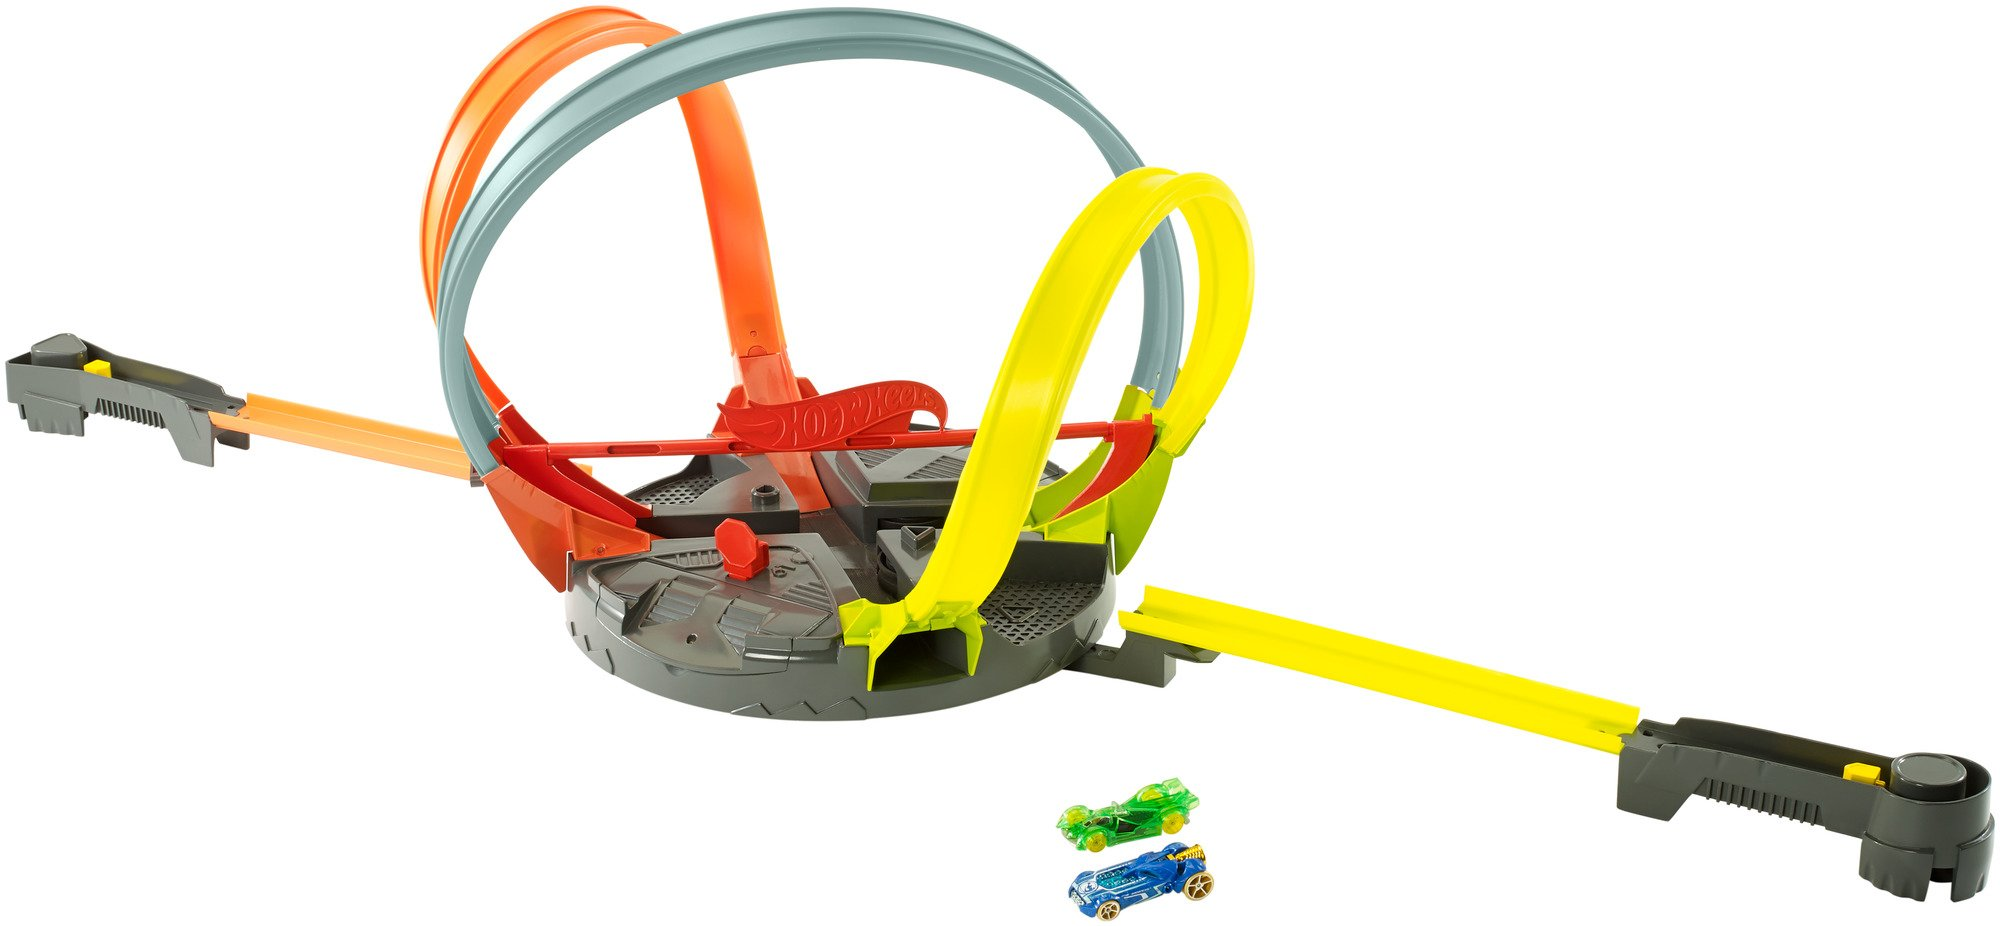 Hot Wheels Roto Revolution Track Playset by Hot Wheels (Image #1)